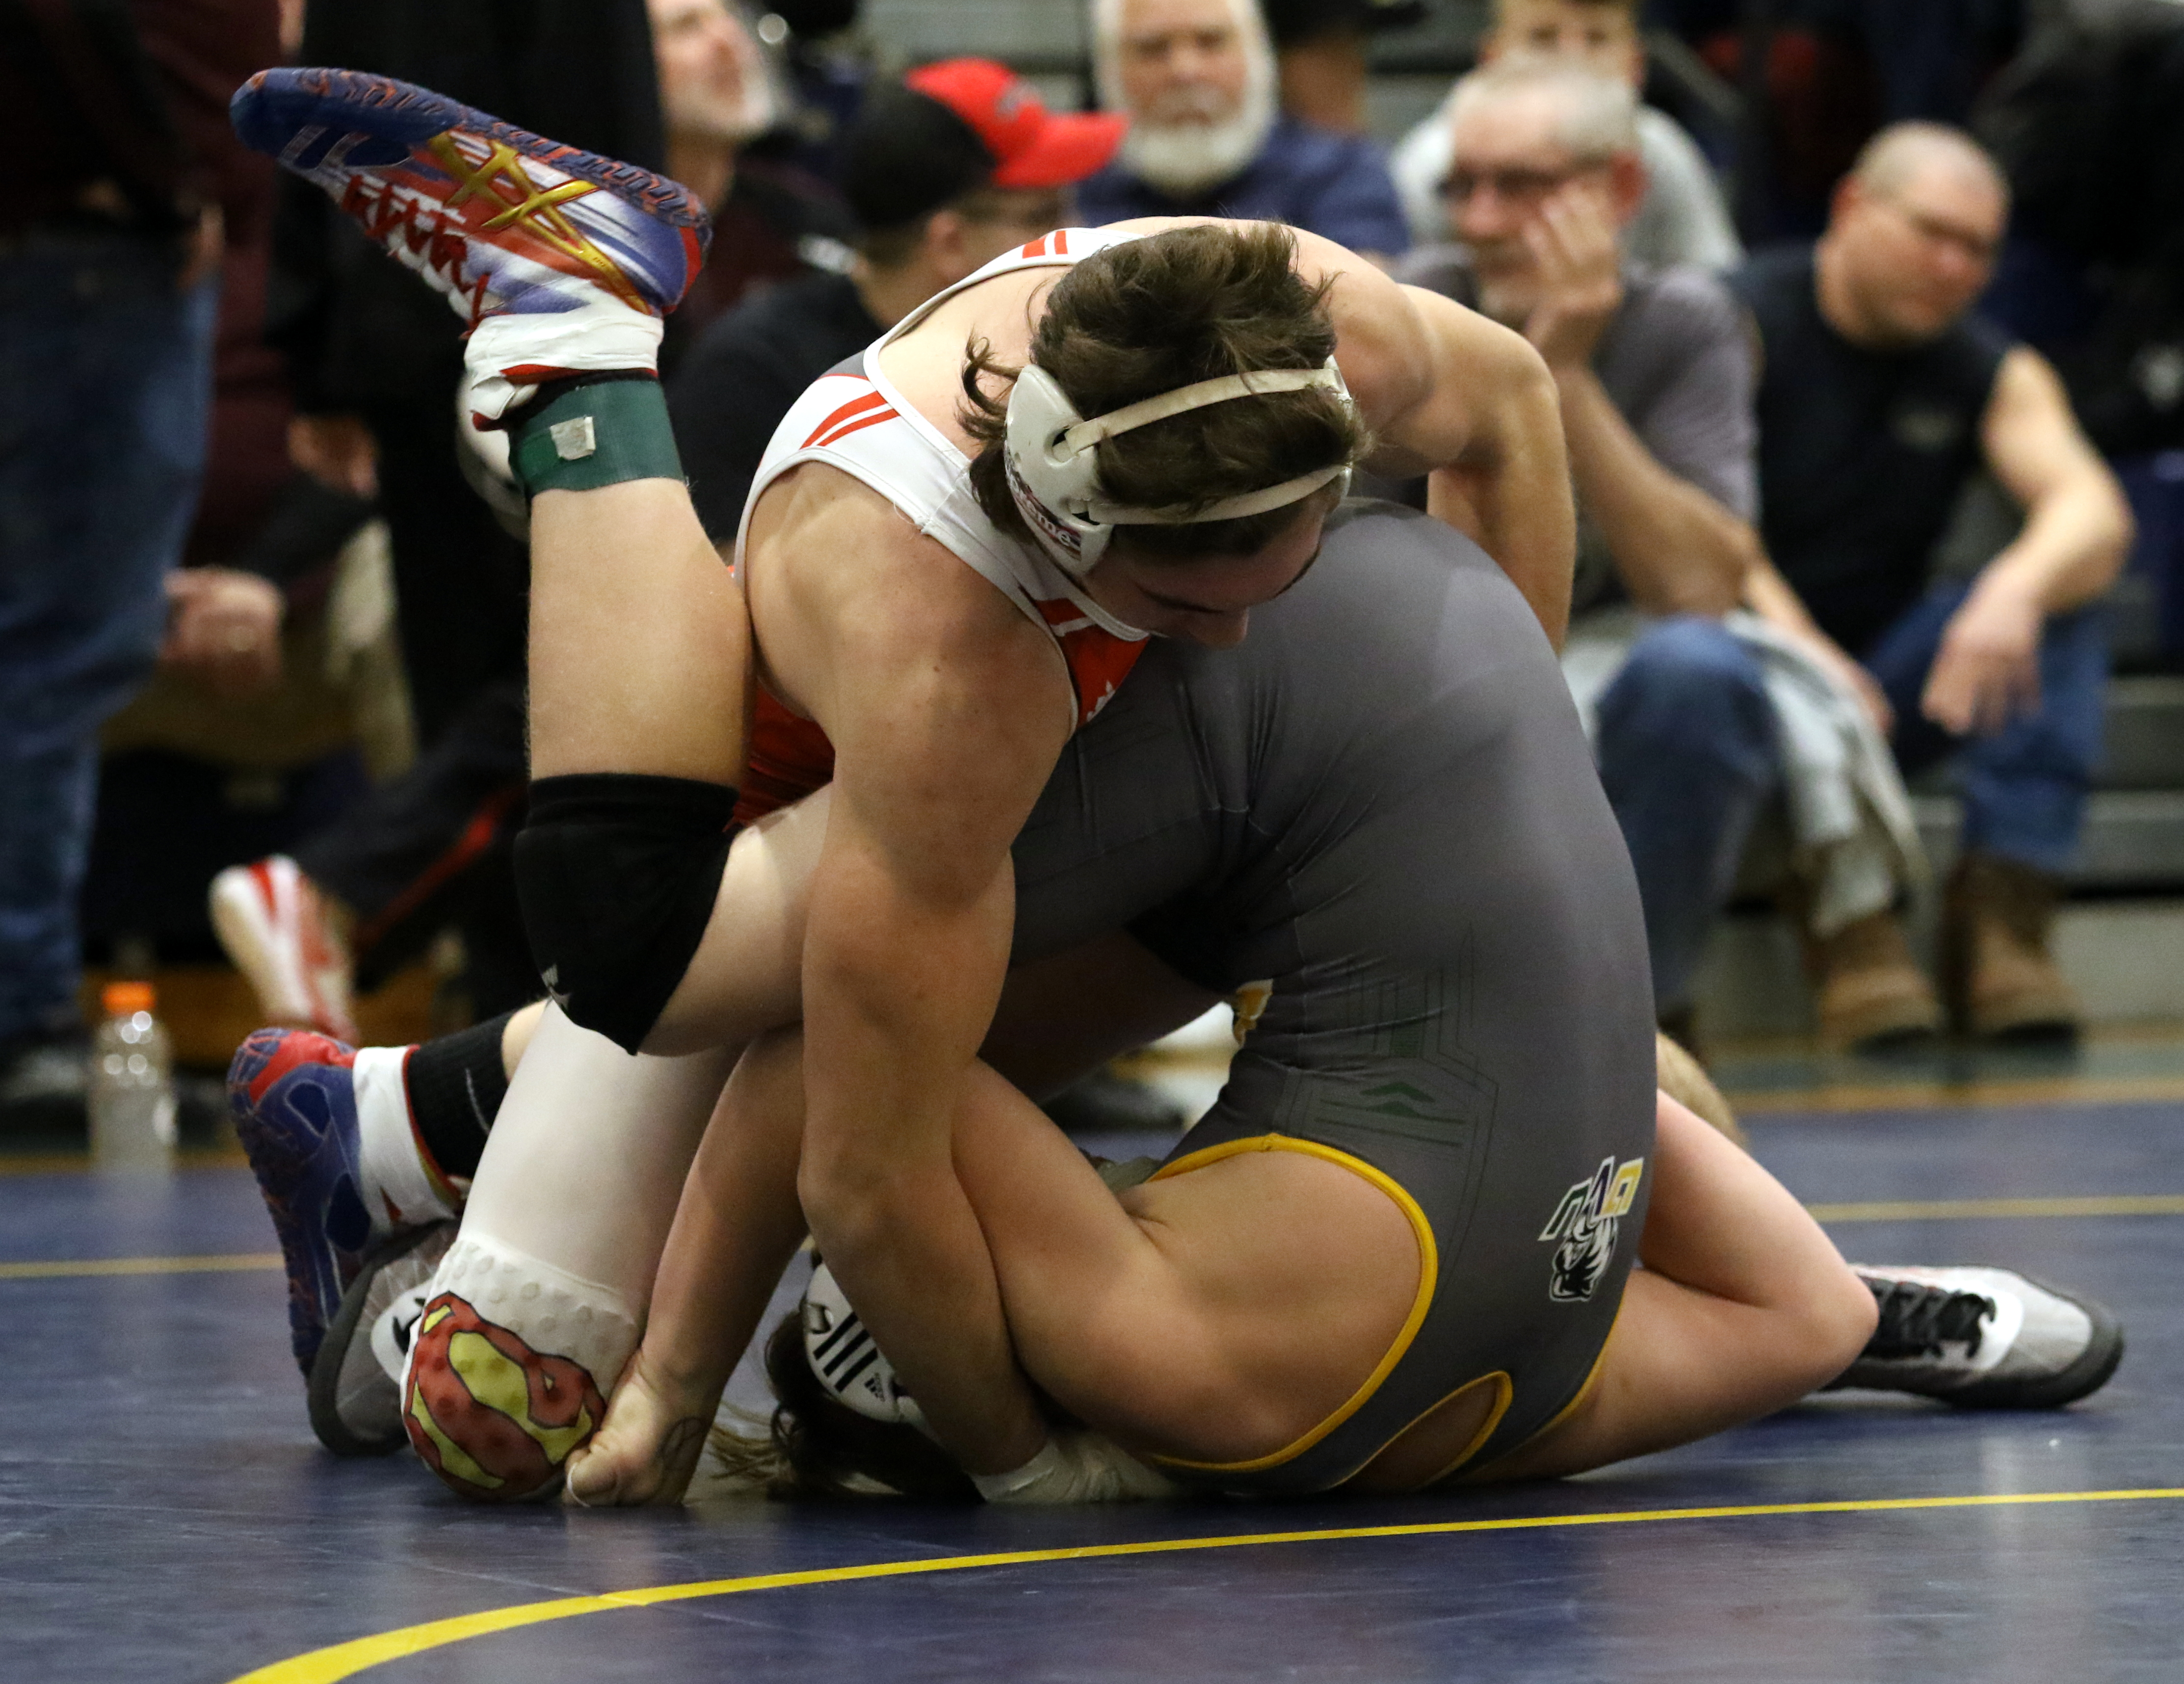 STOTLER WINS TITLE, KIMBLE RUNNER-UP; WAVERLY PLACES FIVE, FINISHES 8TH AT ONEONTA ROTARY TOURNAMENT